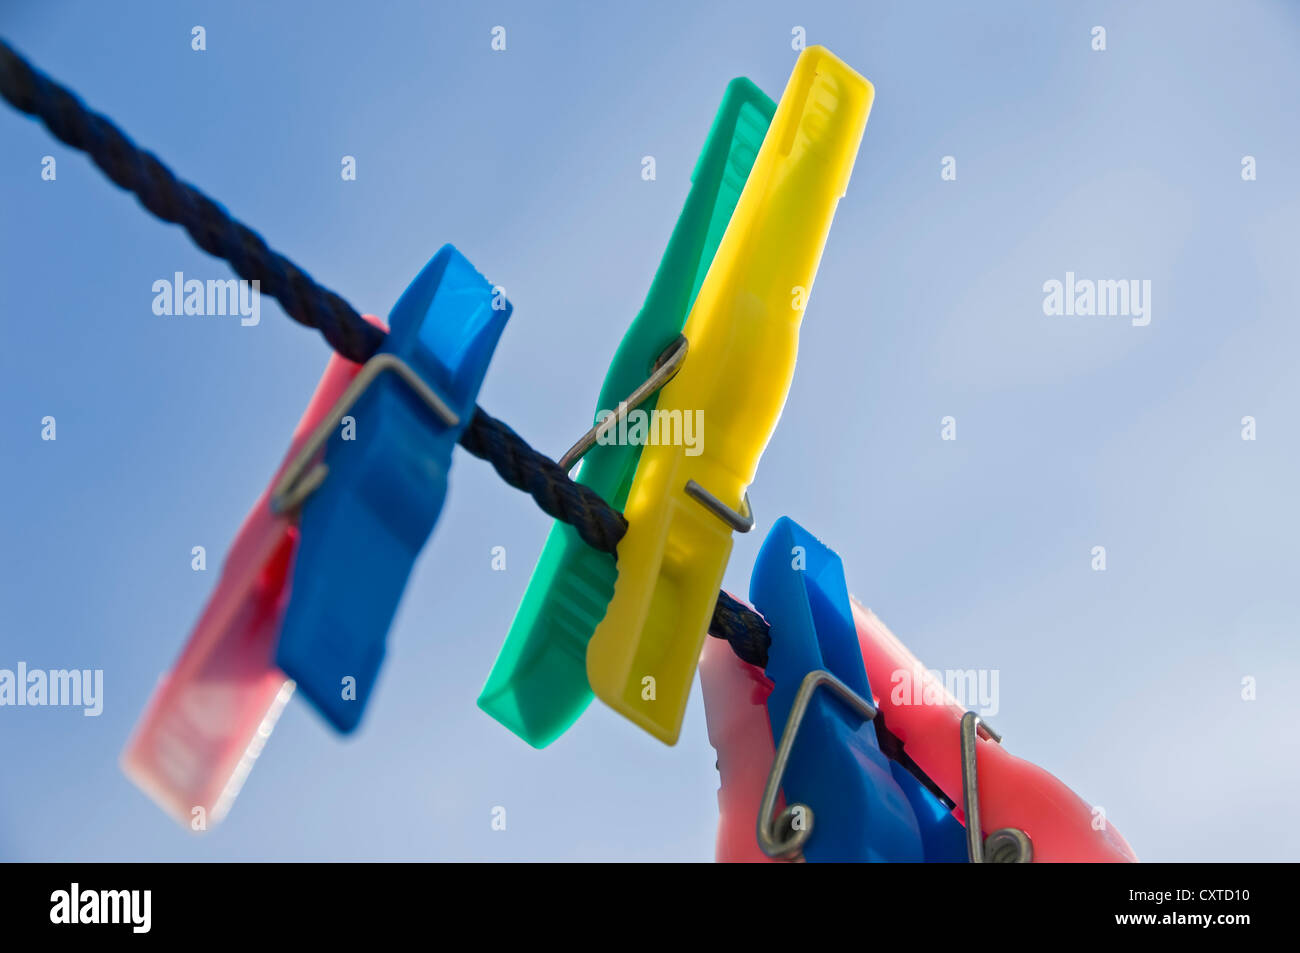 Close up of plastic clothes pegs peg on washing line England UK United Kingdom GB Great Britain Stock Photo